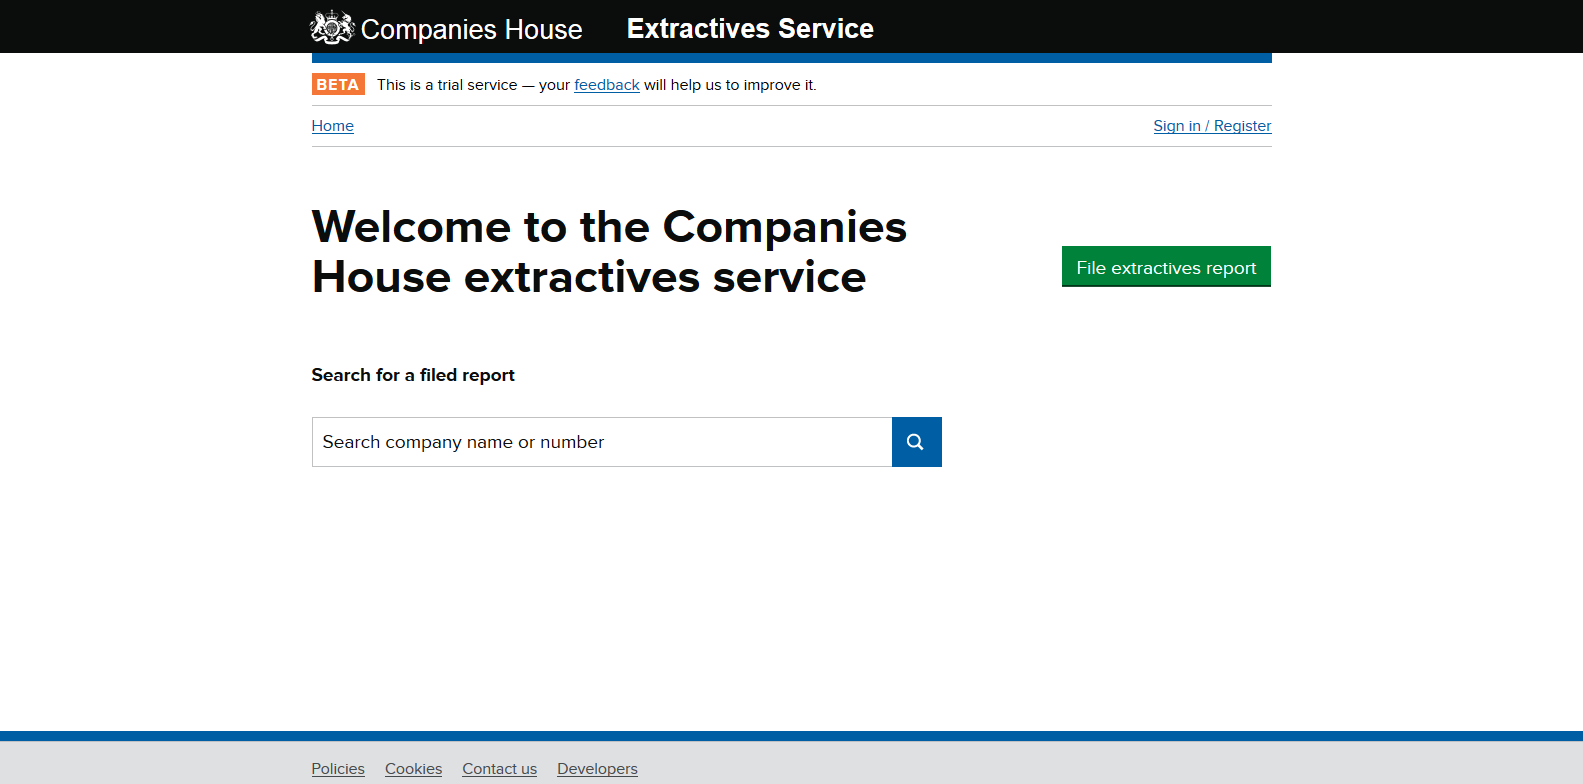 Companies House extractives service